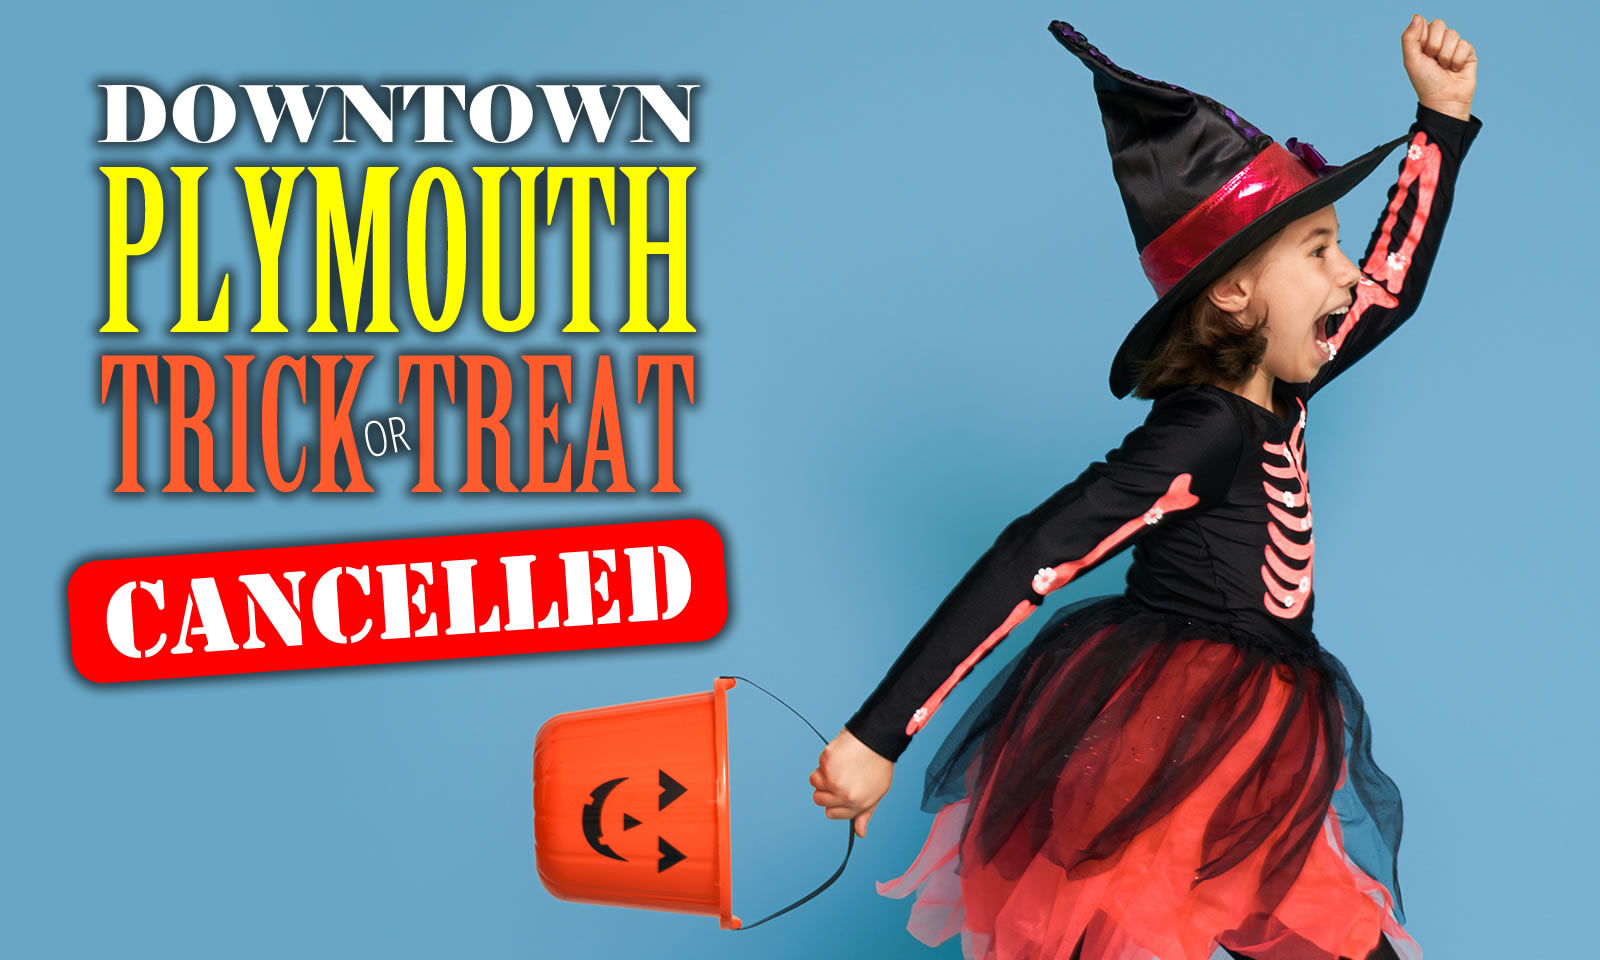 Downtown Plymouth Trick or Treat Canceled